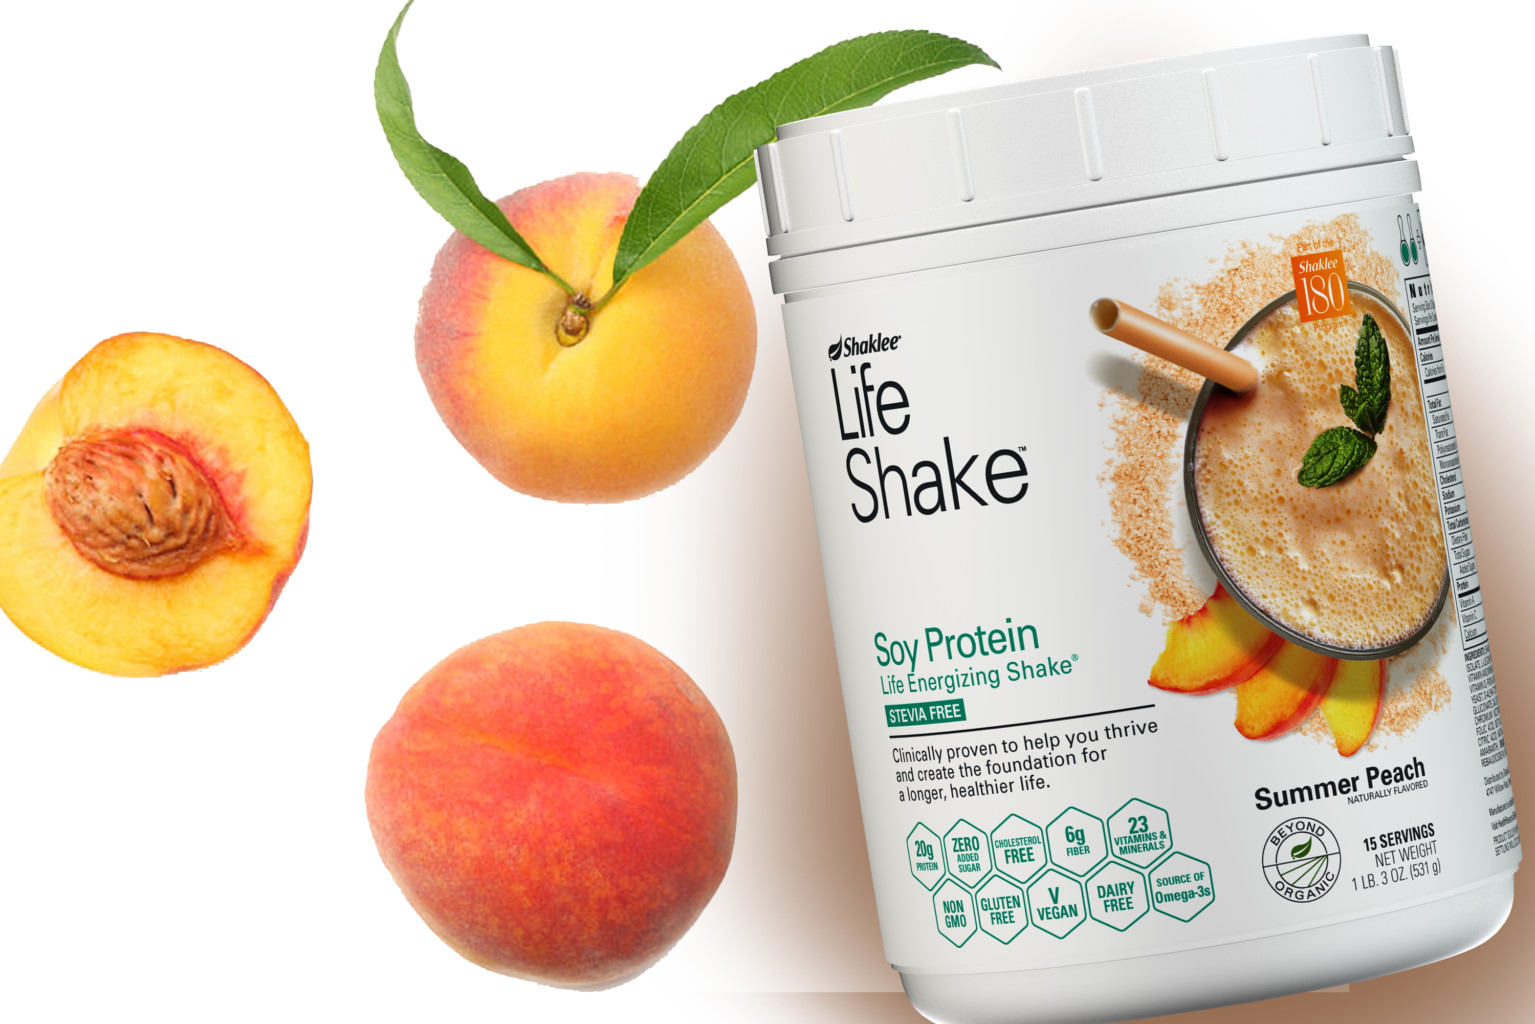 Available Now! New and Improved Summer Peach Life Shake